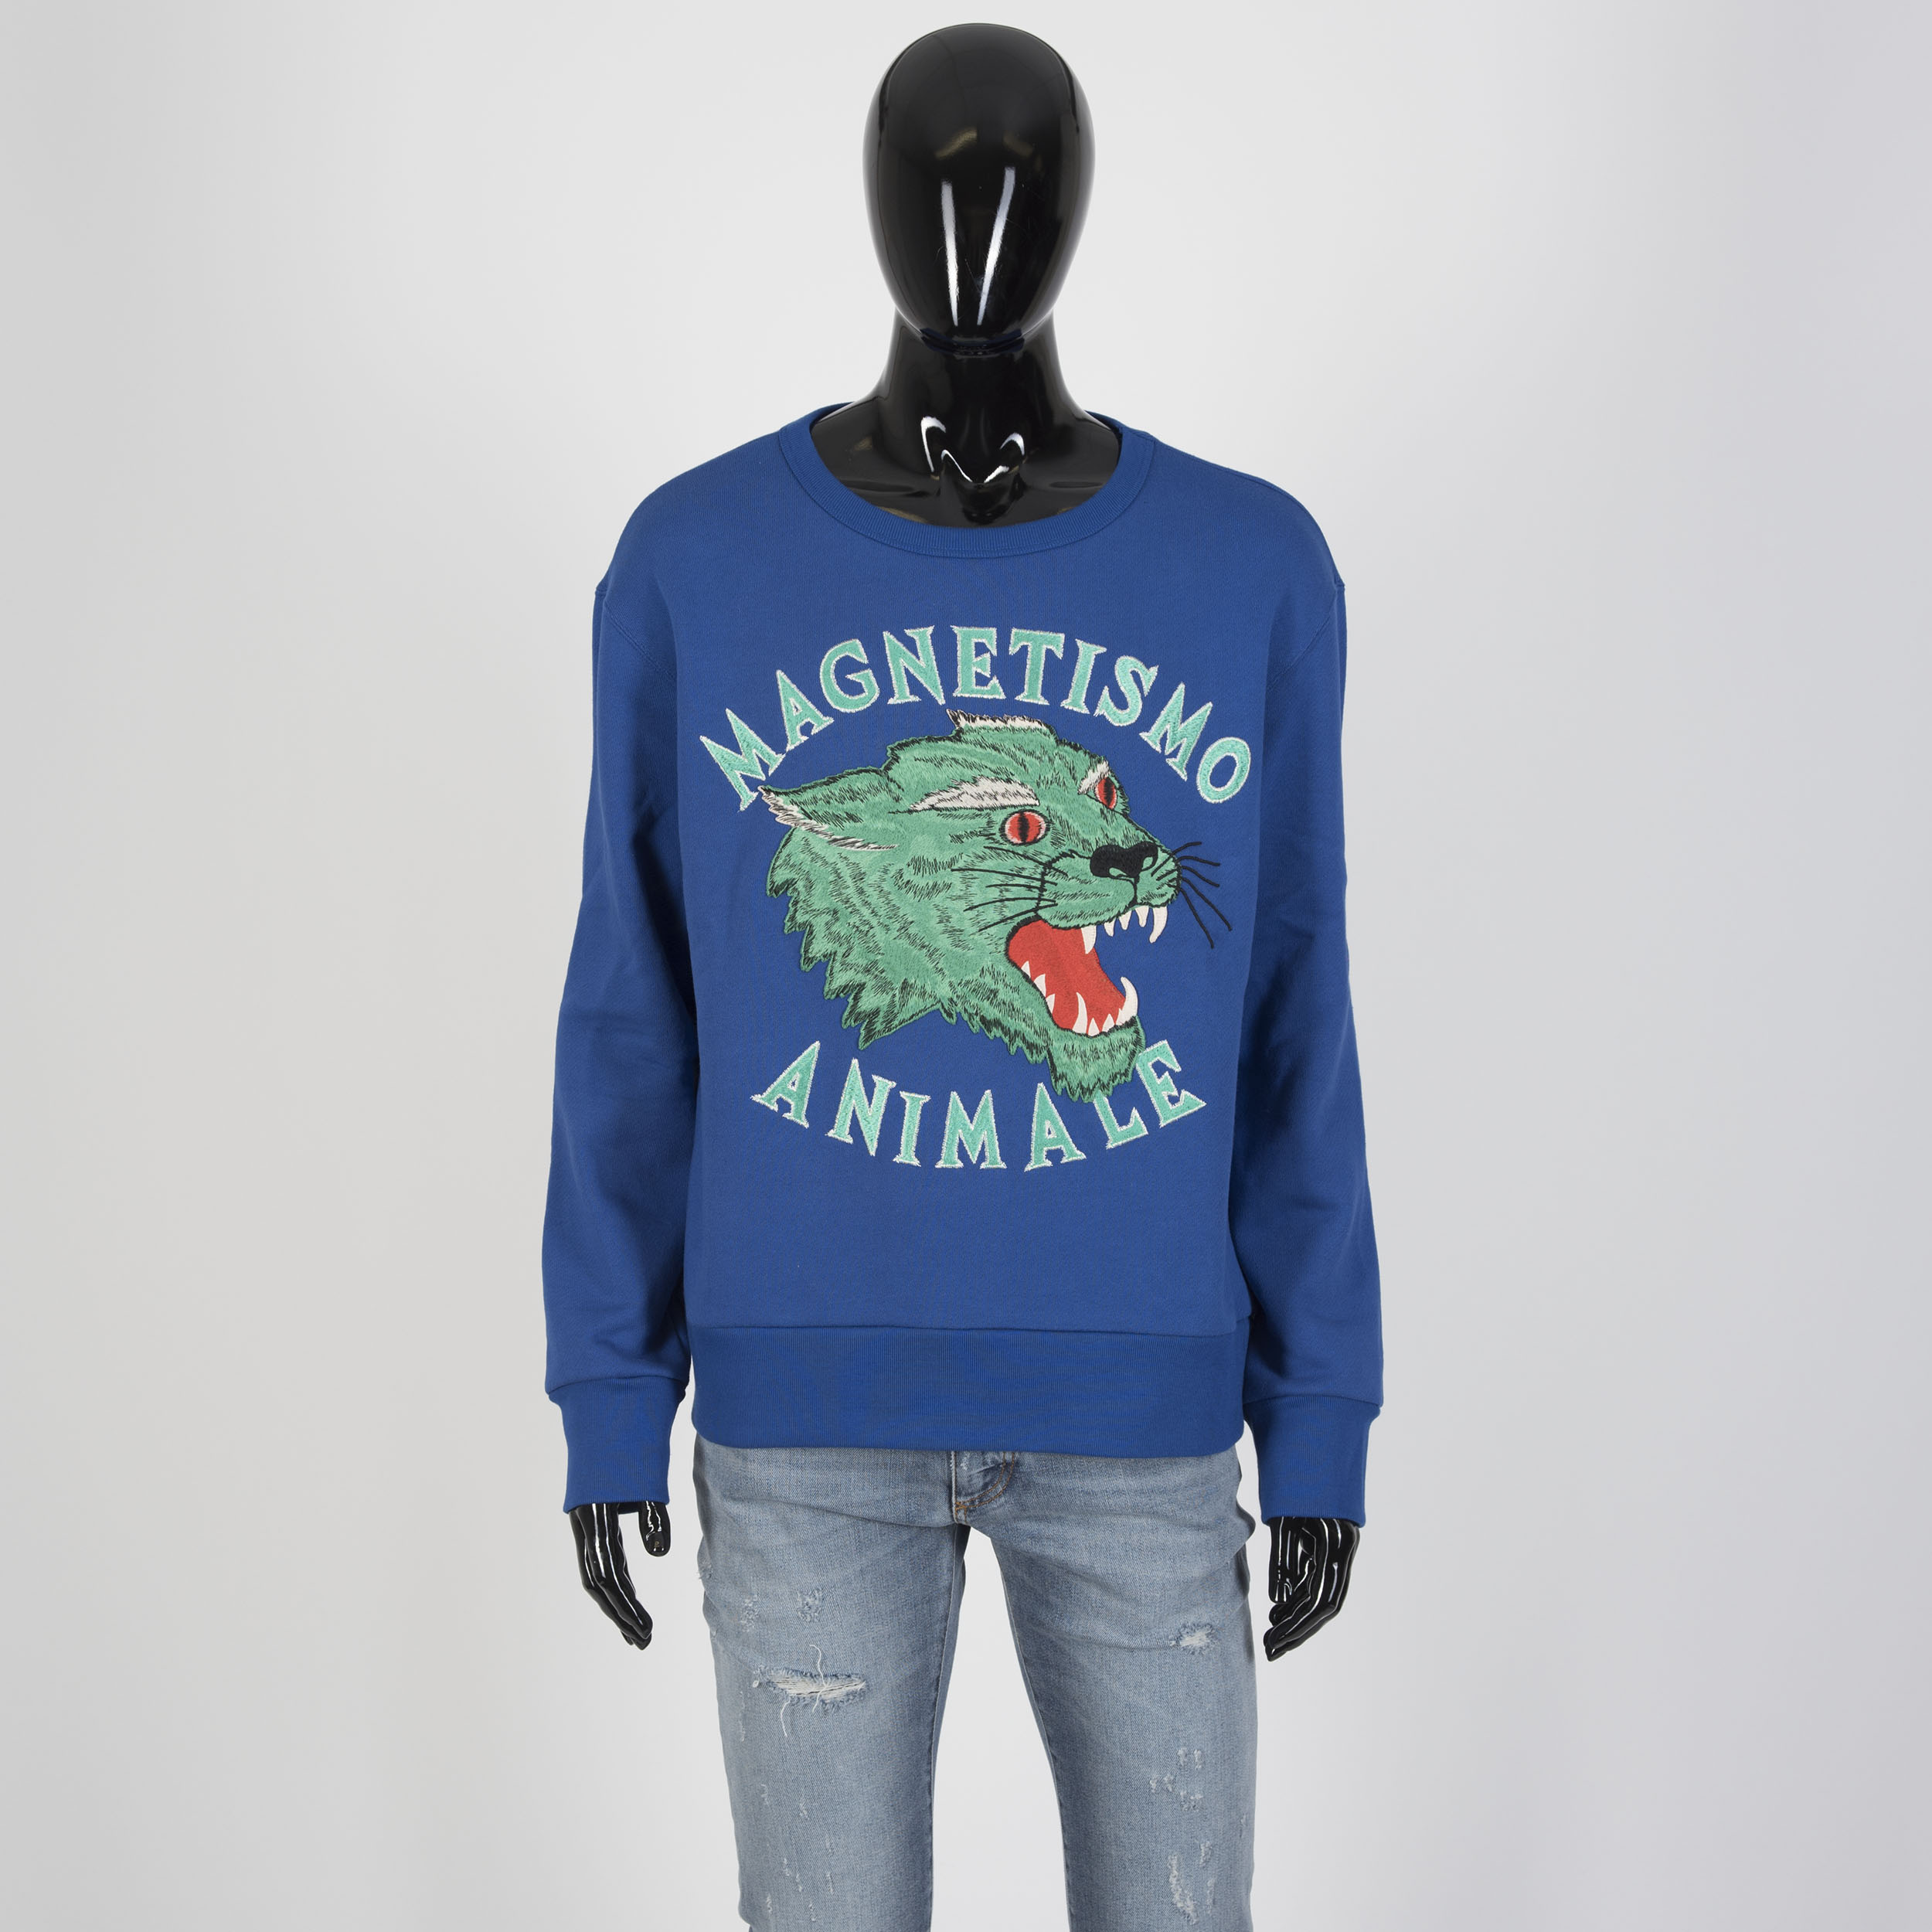 e492ddbaa11 Details about GUCCI 1450  Magnetismo Animale Crewneck Sweatshirt In Blue  Cotton